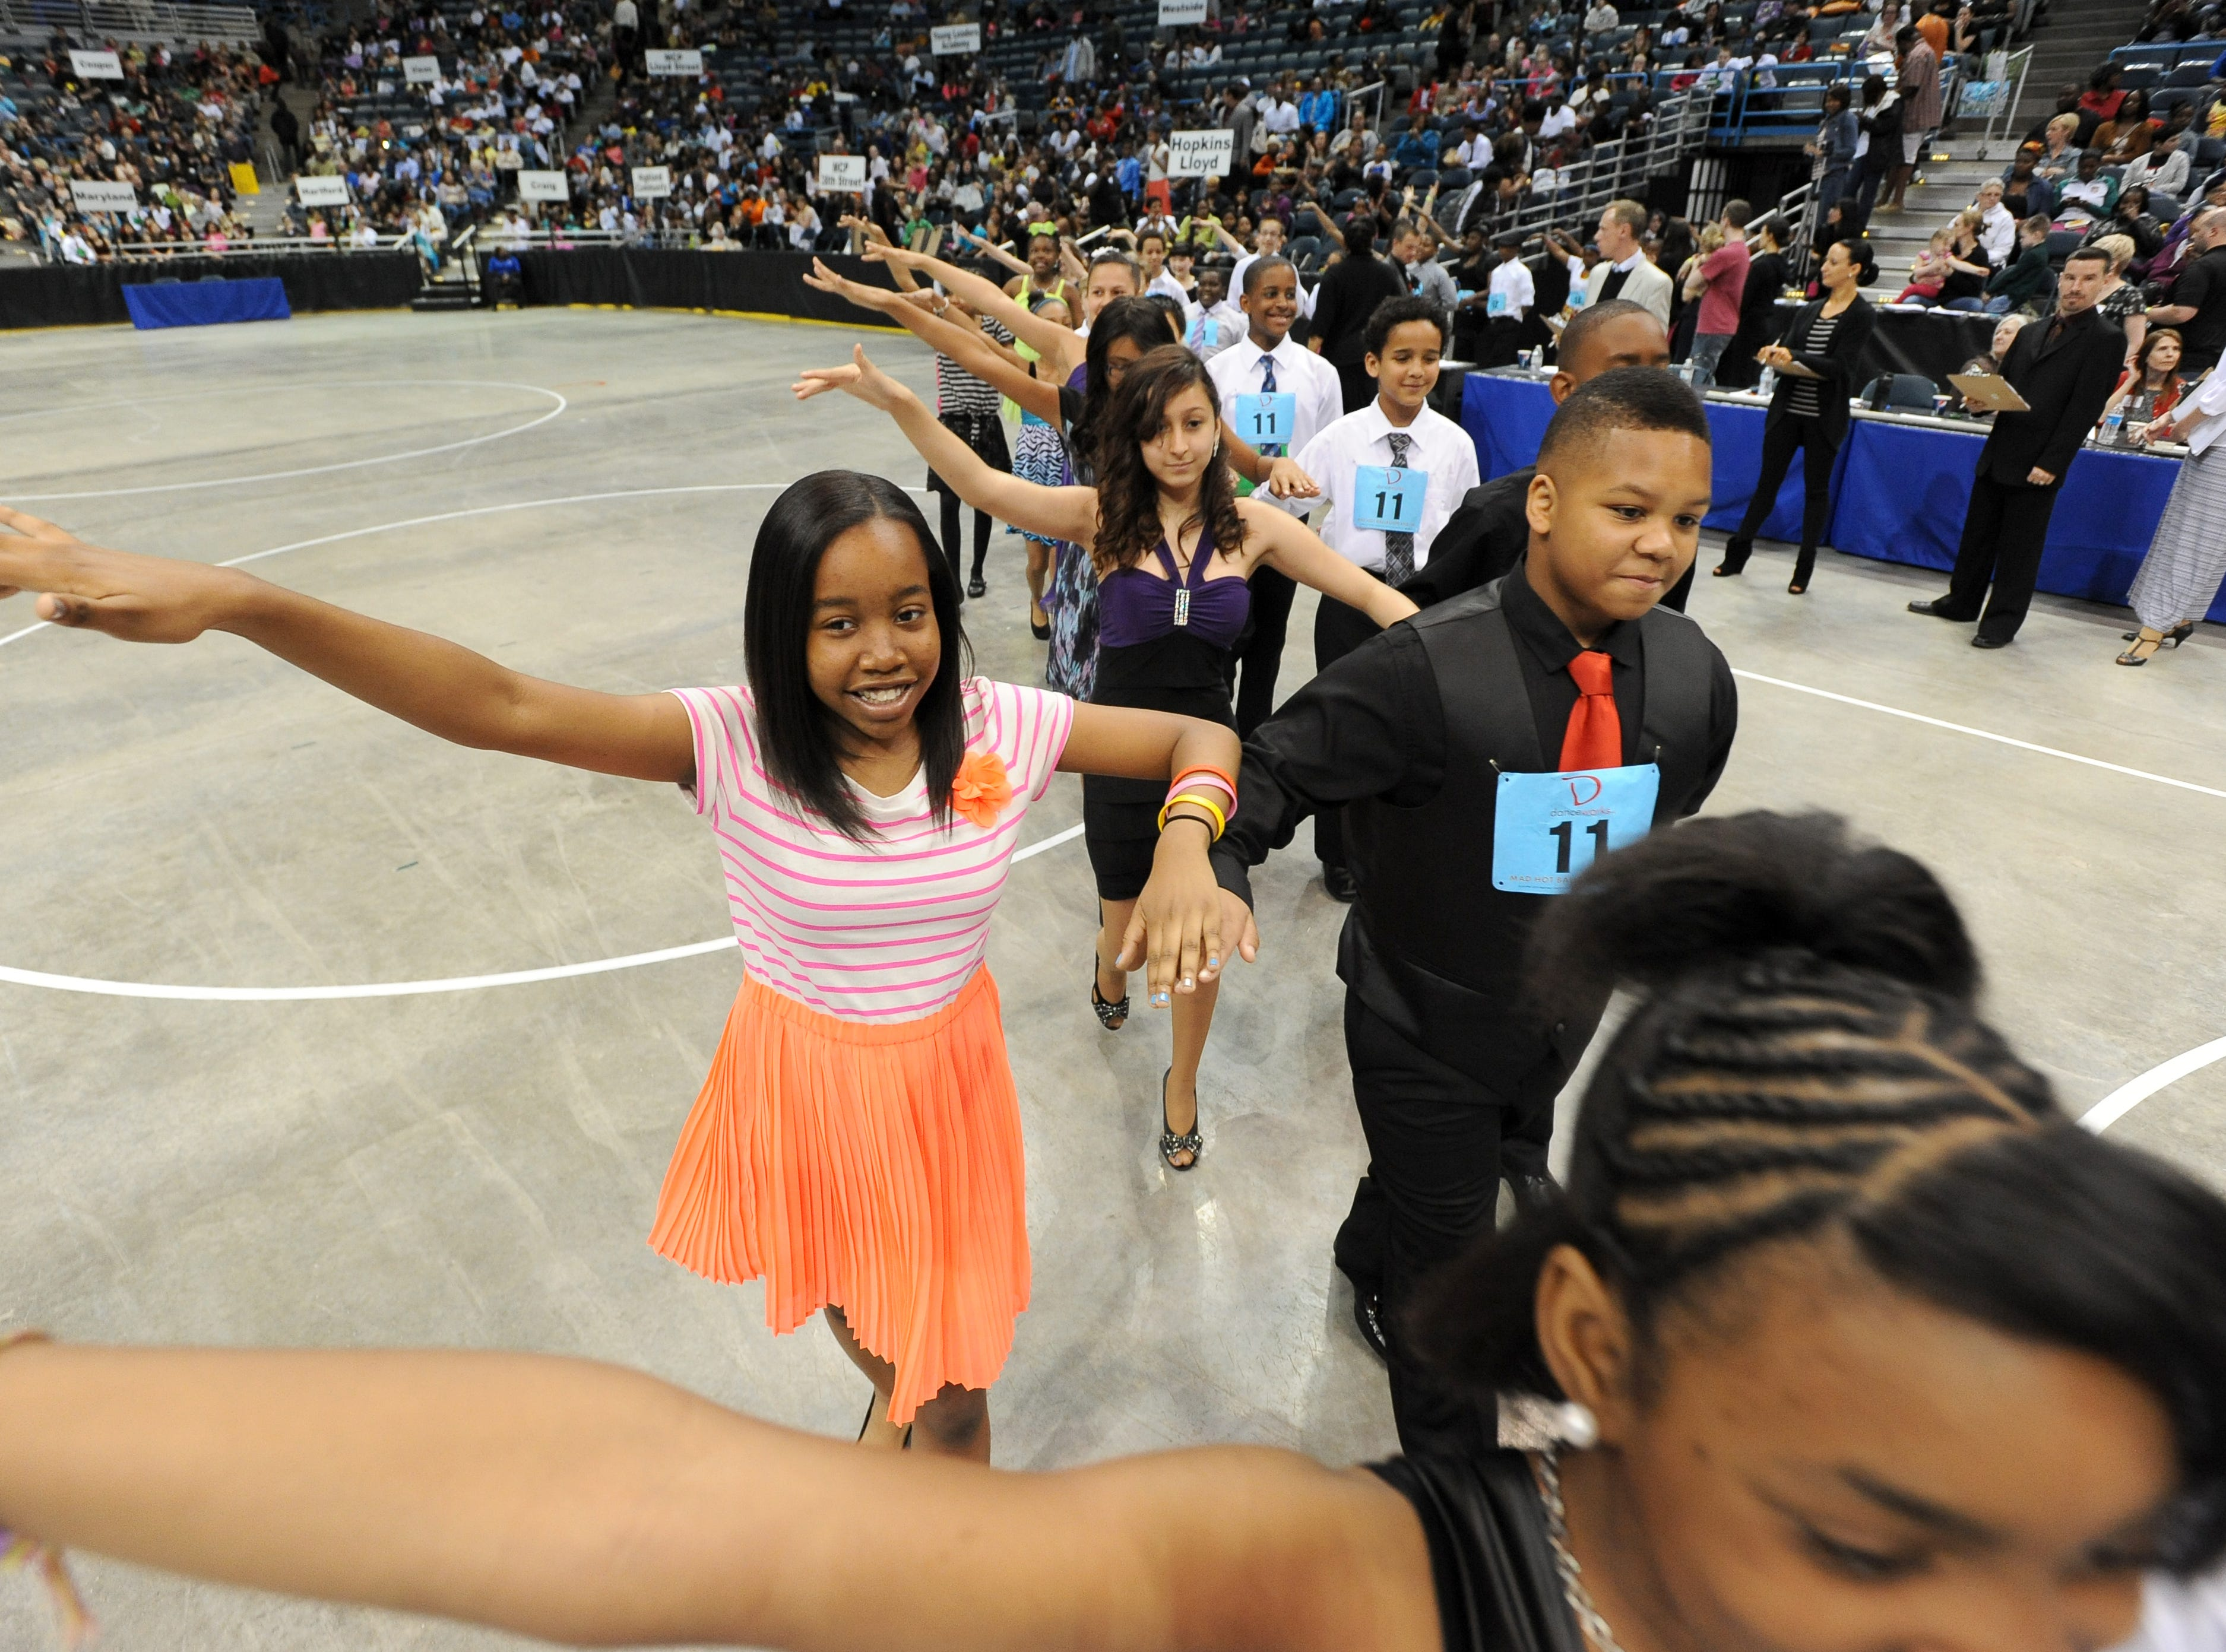 2013: Nearly 2,200 local students from 43 area schools perform and compete in the Mad Hot Ballroom show at the Bradley Center.